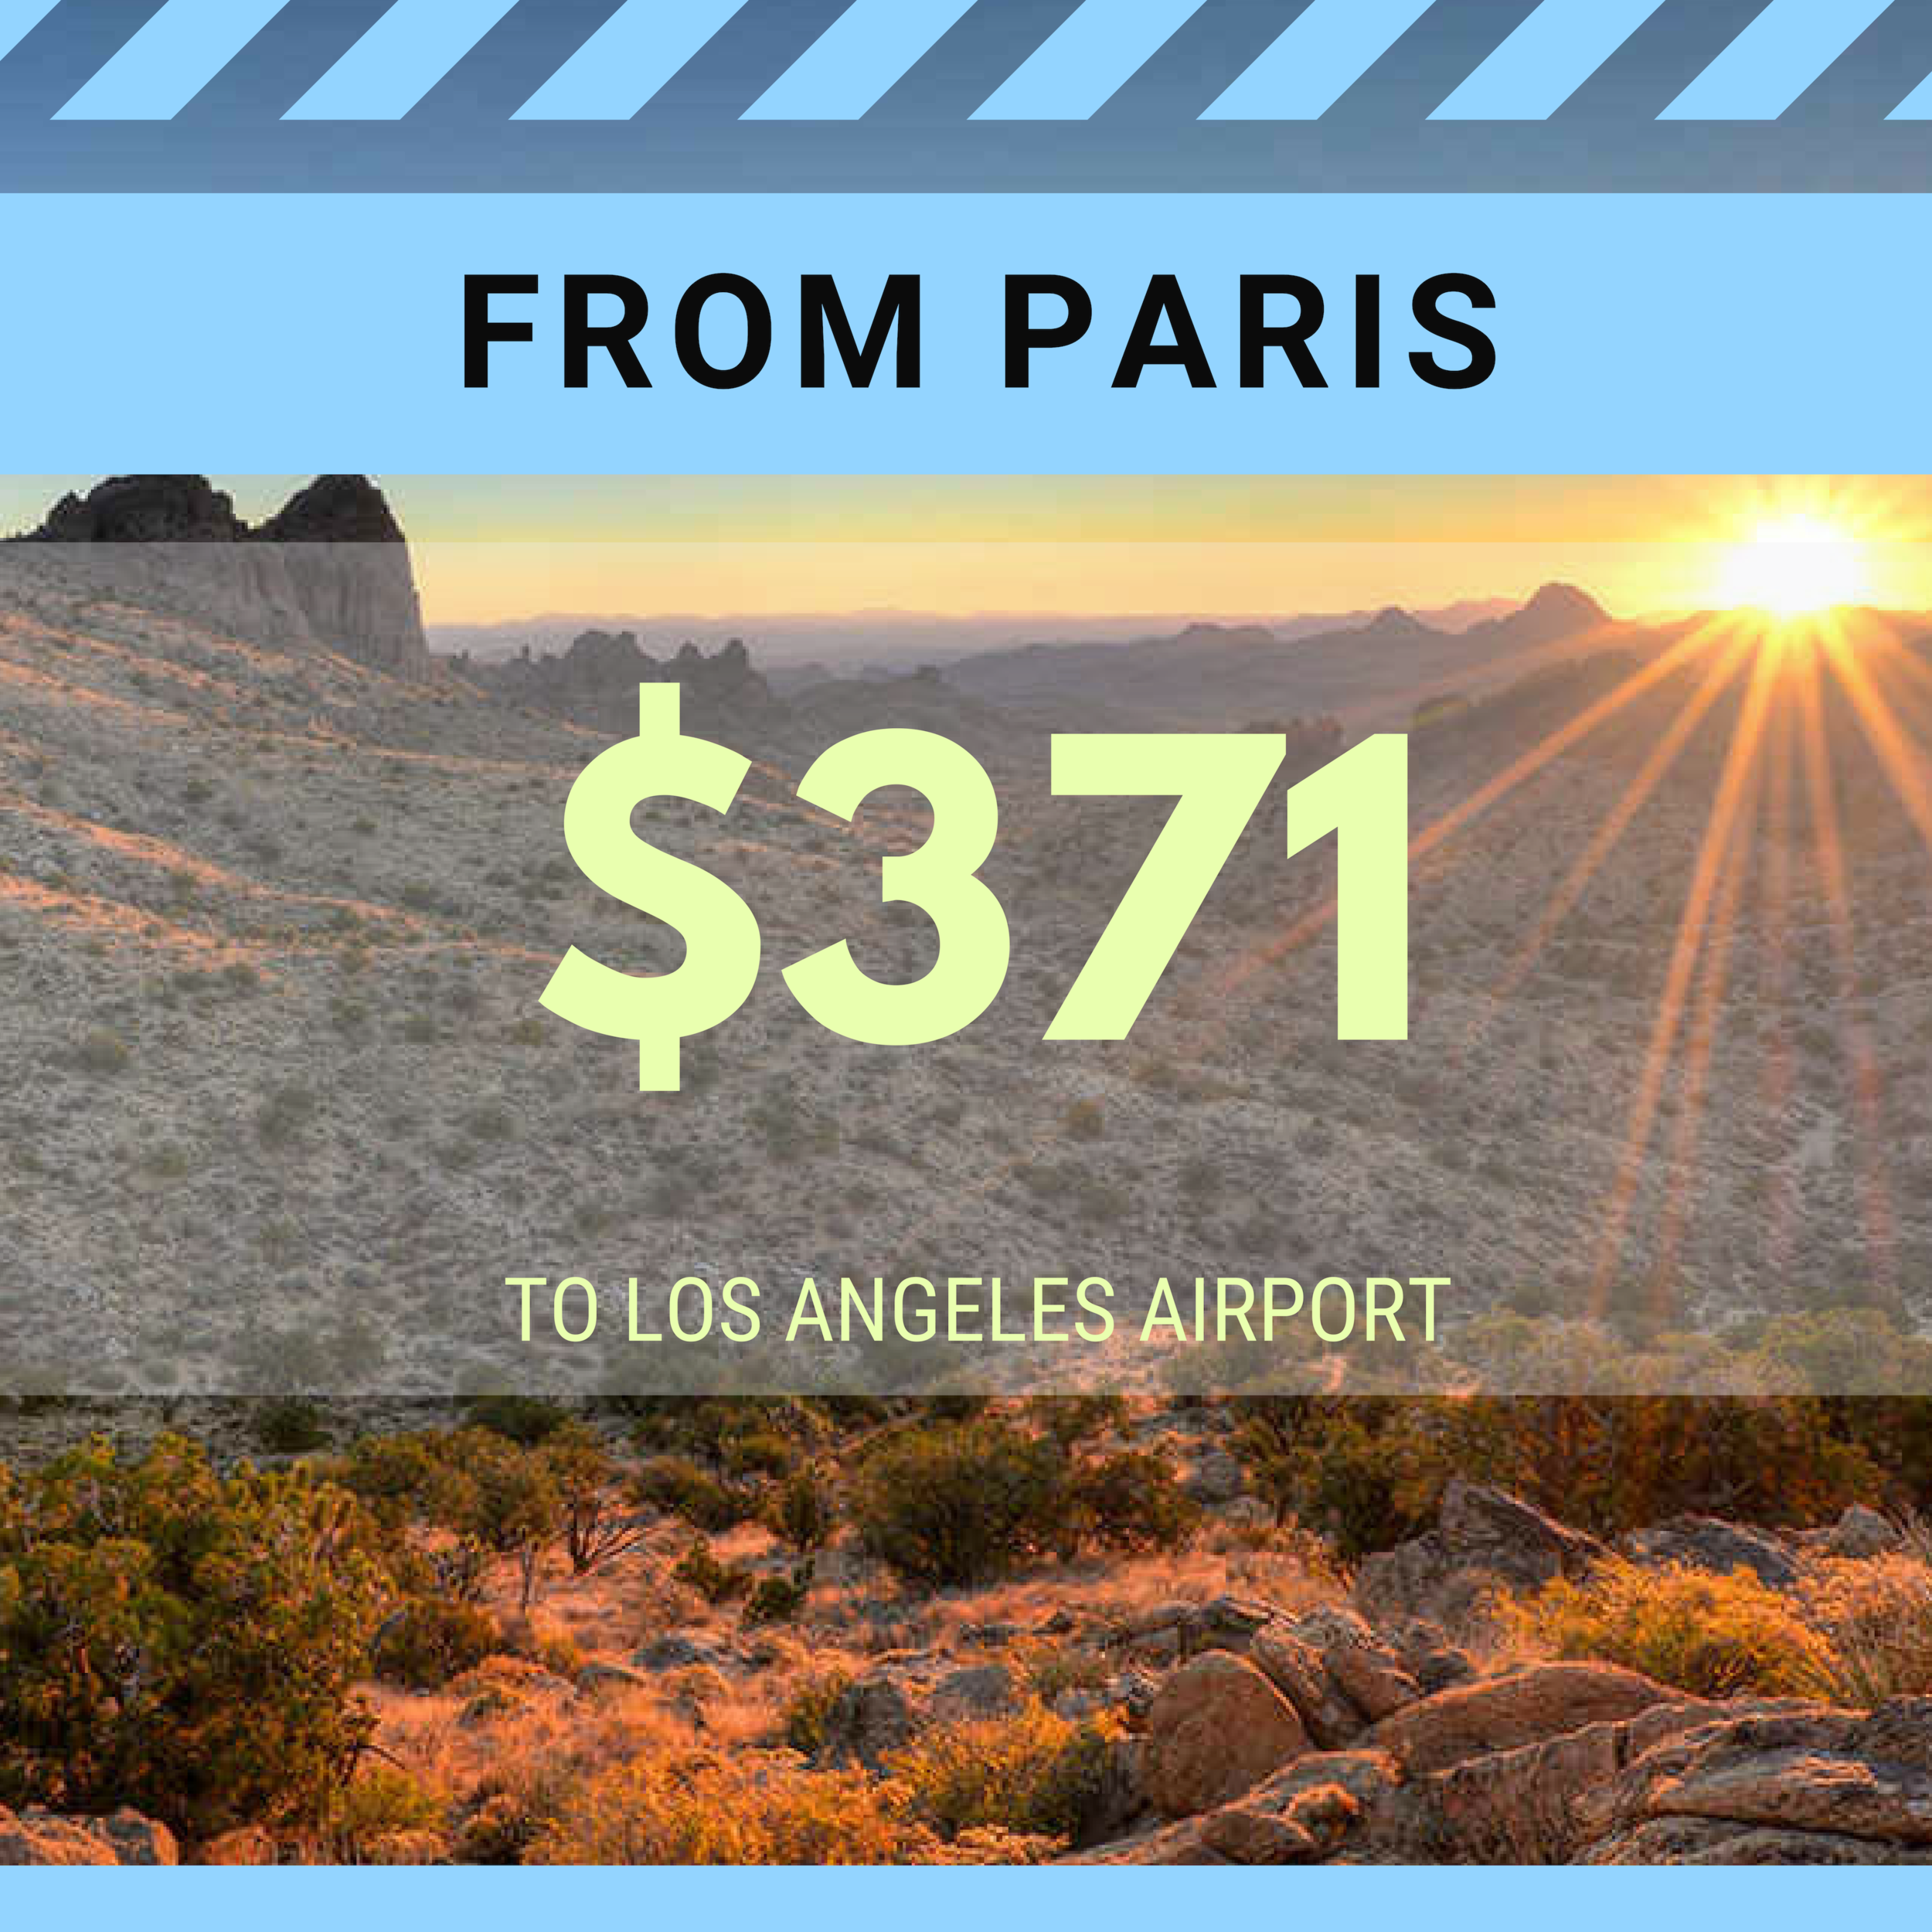 FROM PARIS TO LAX